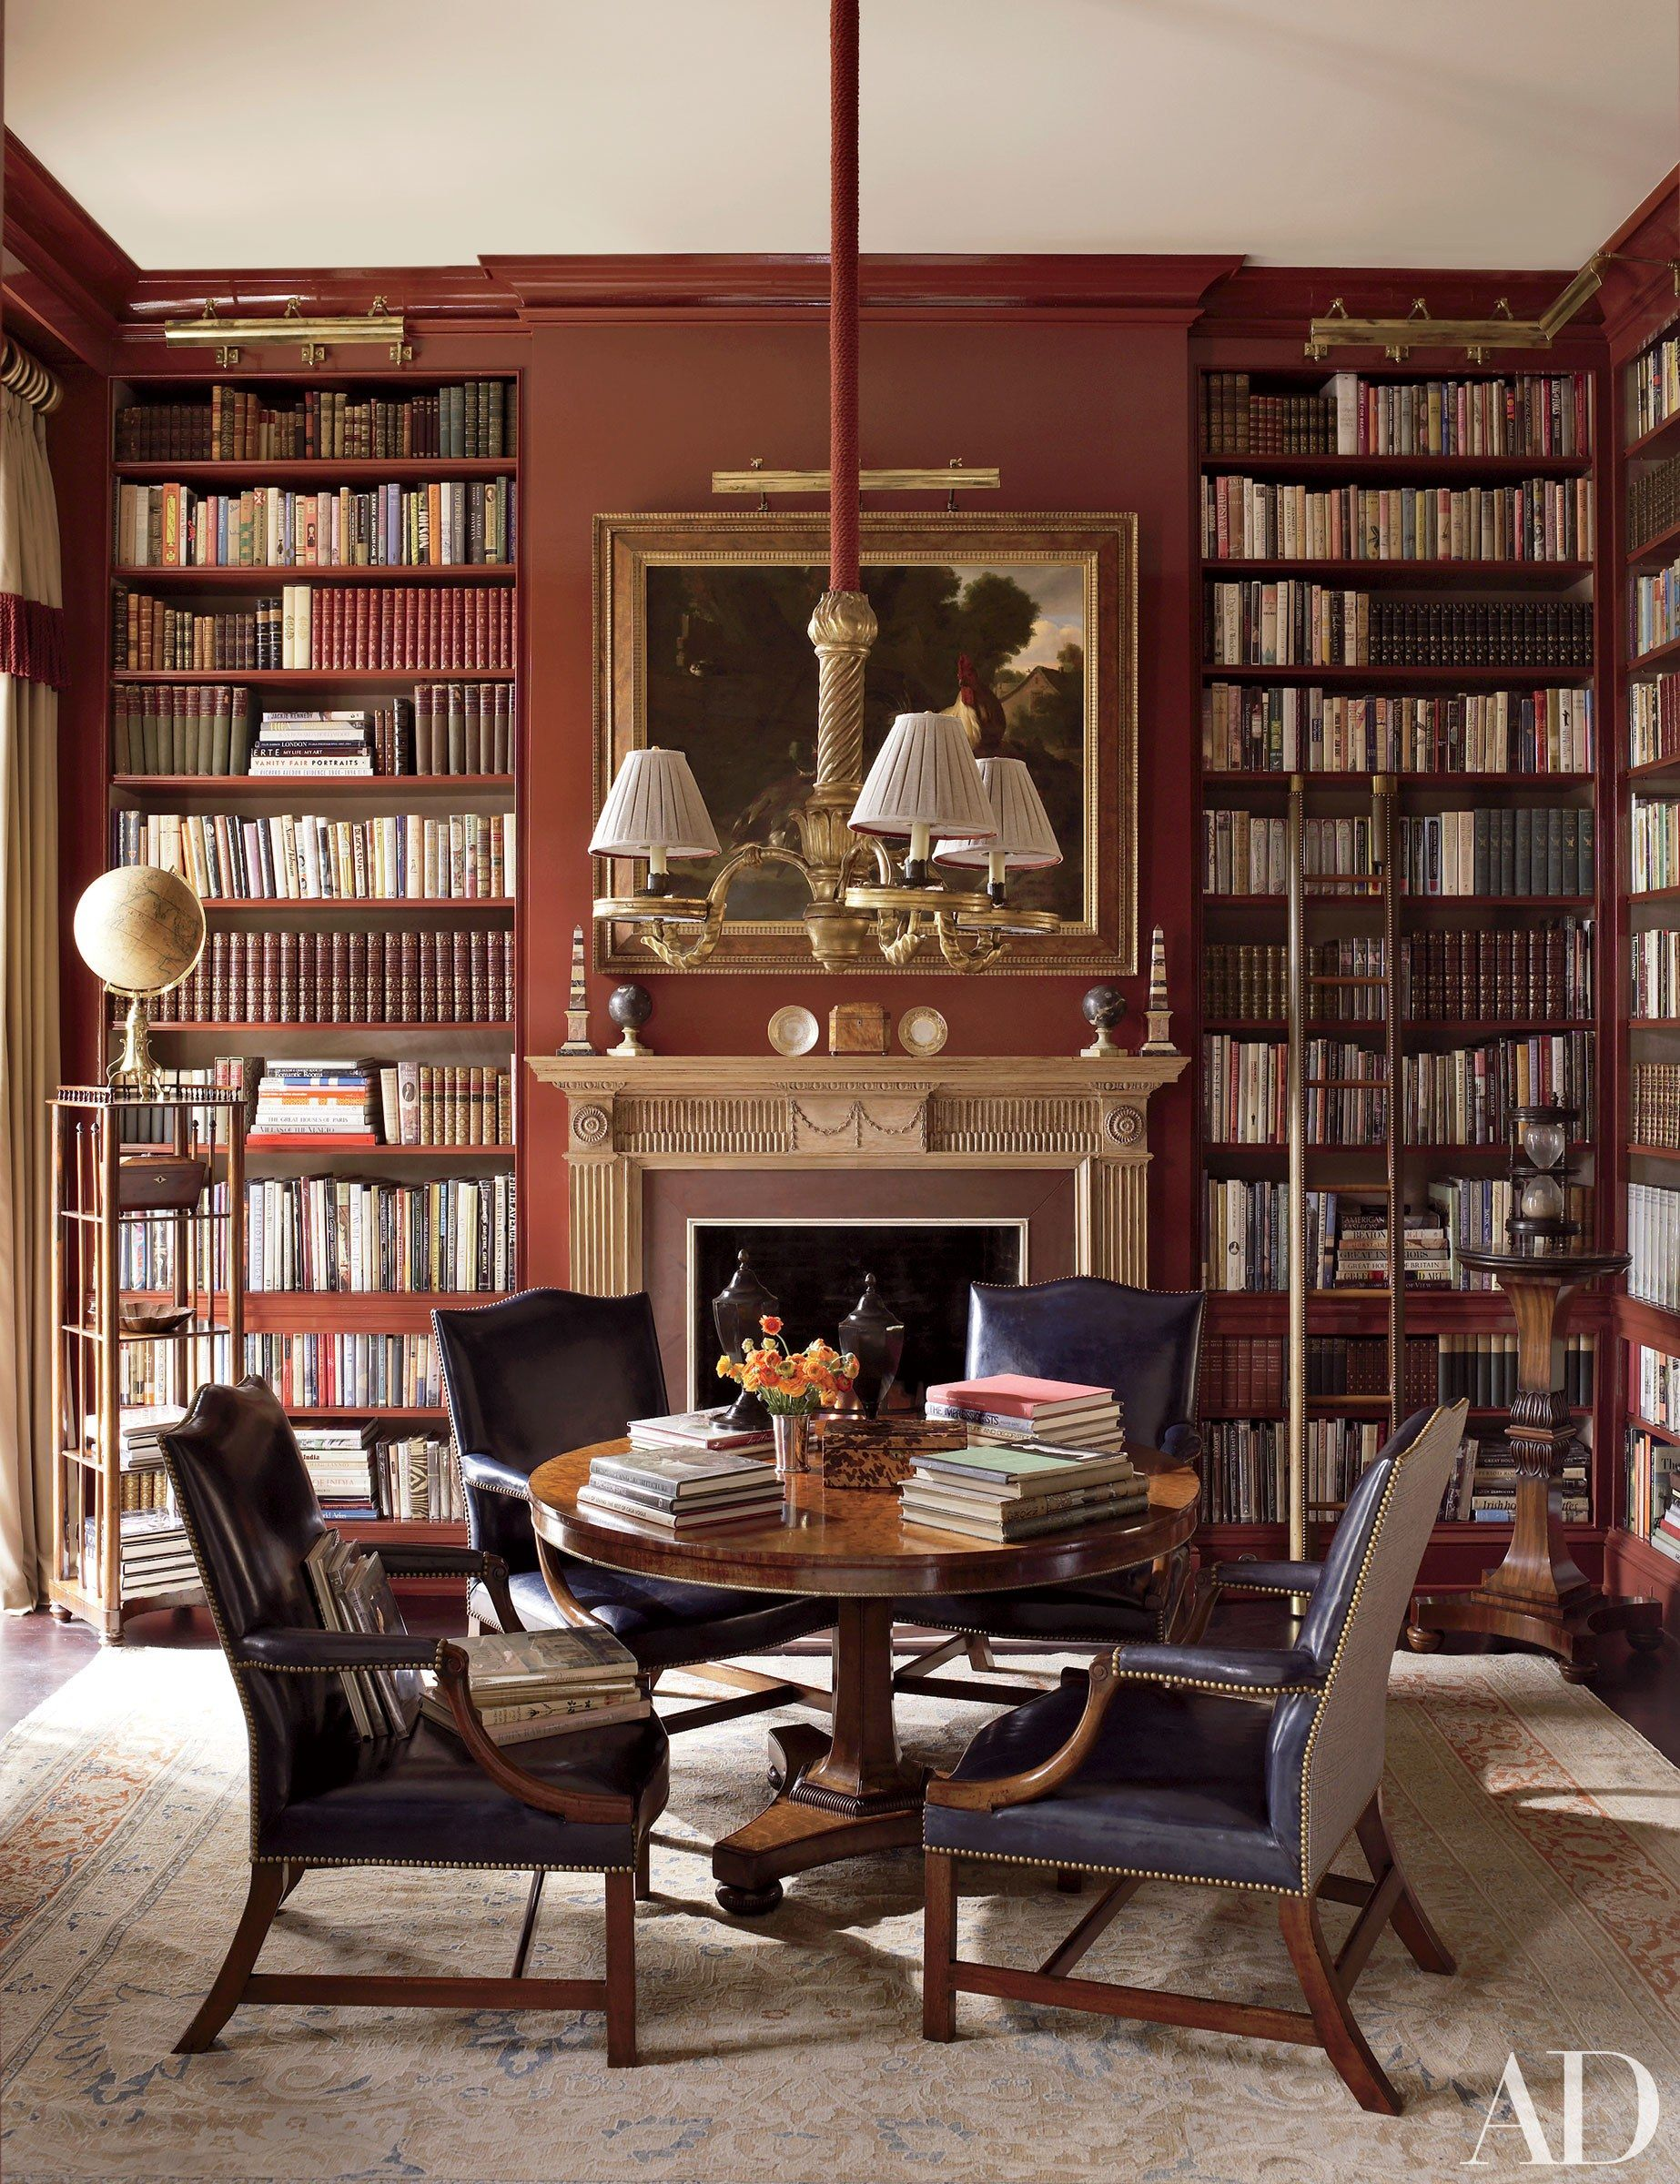 Statement Interiors By Richard Keith Langham Inc Home Libraries